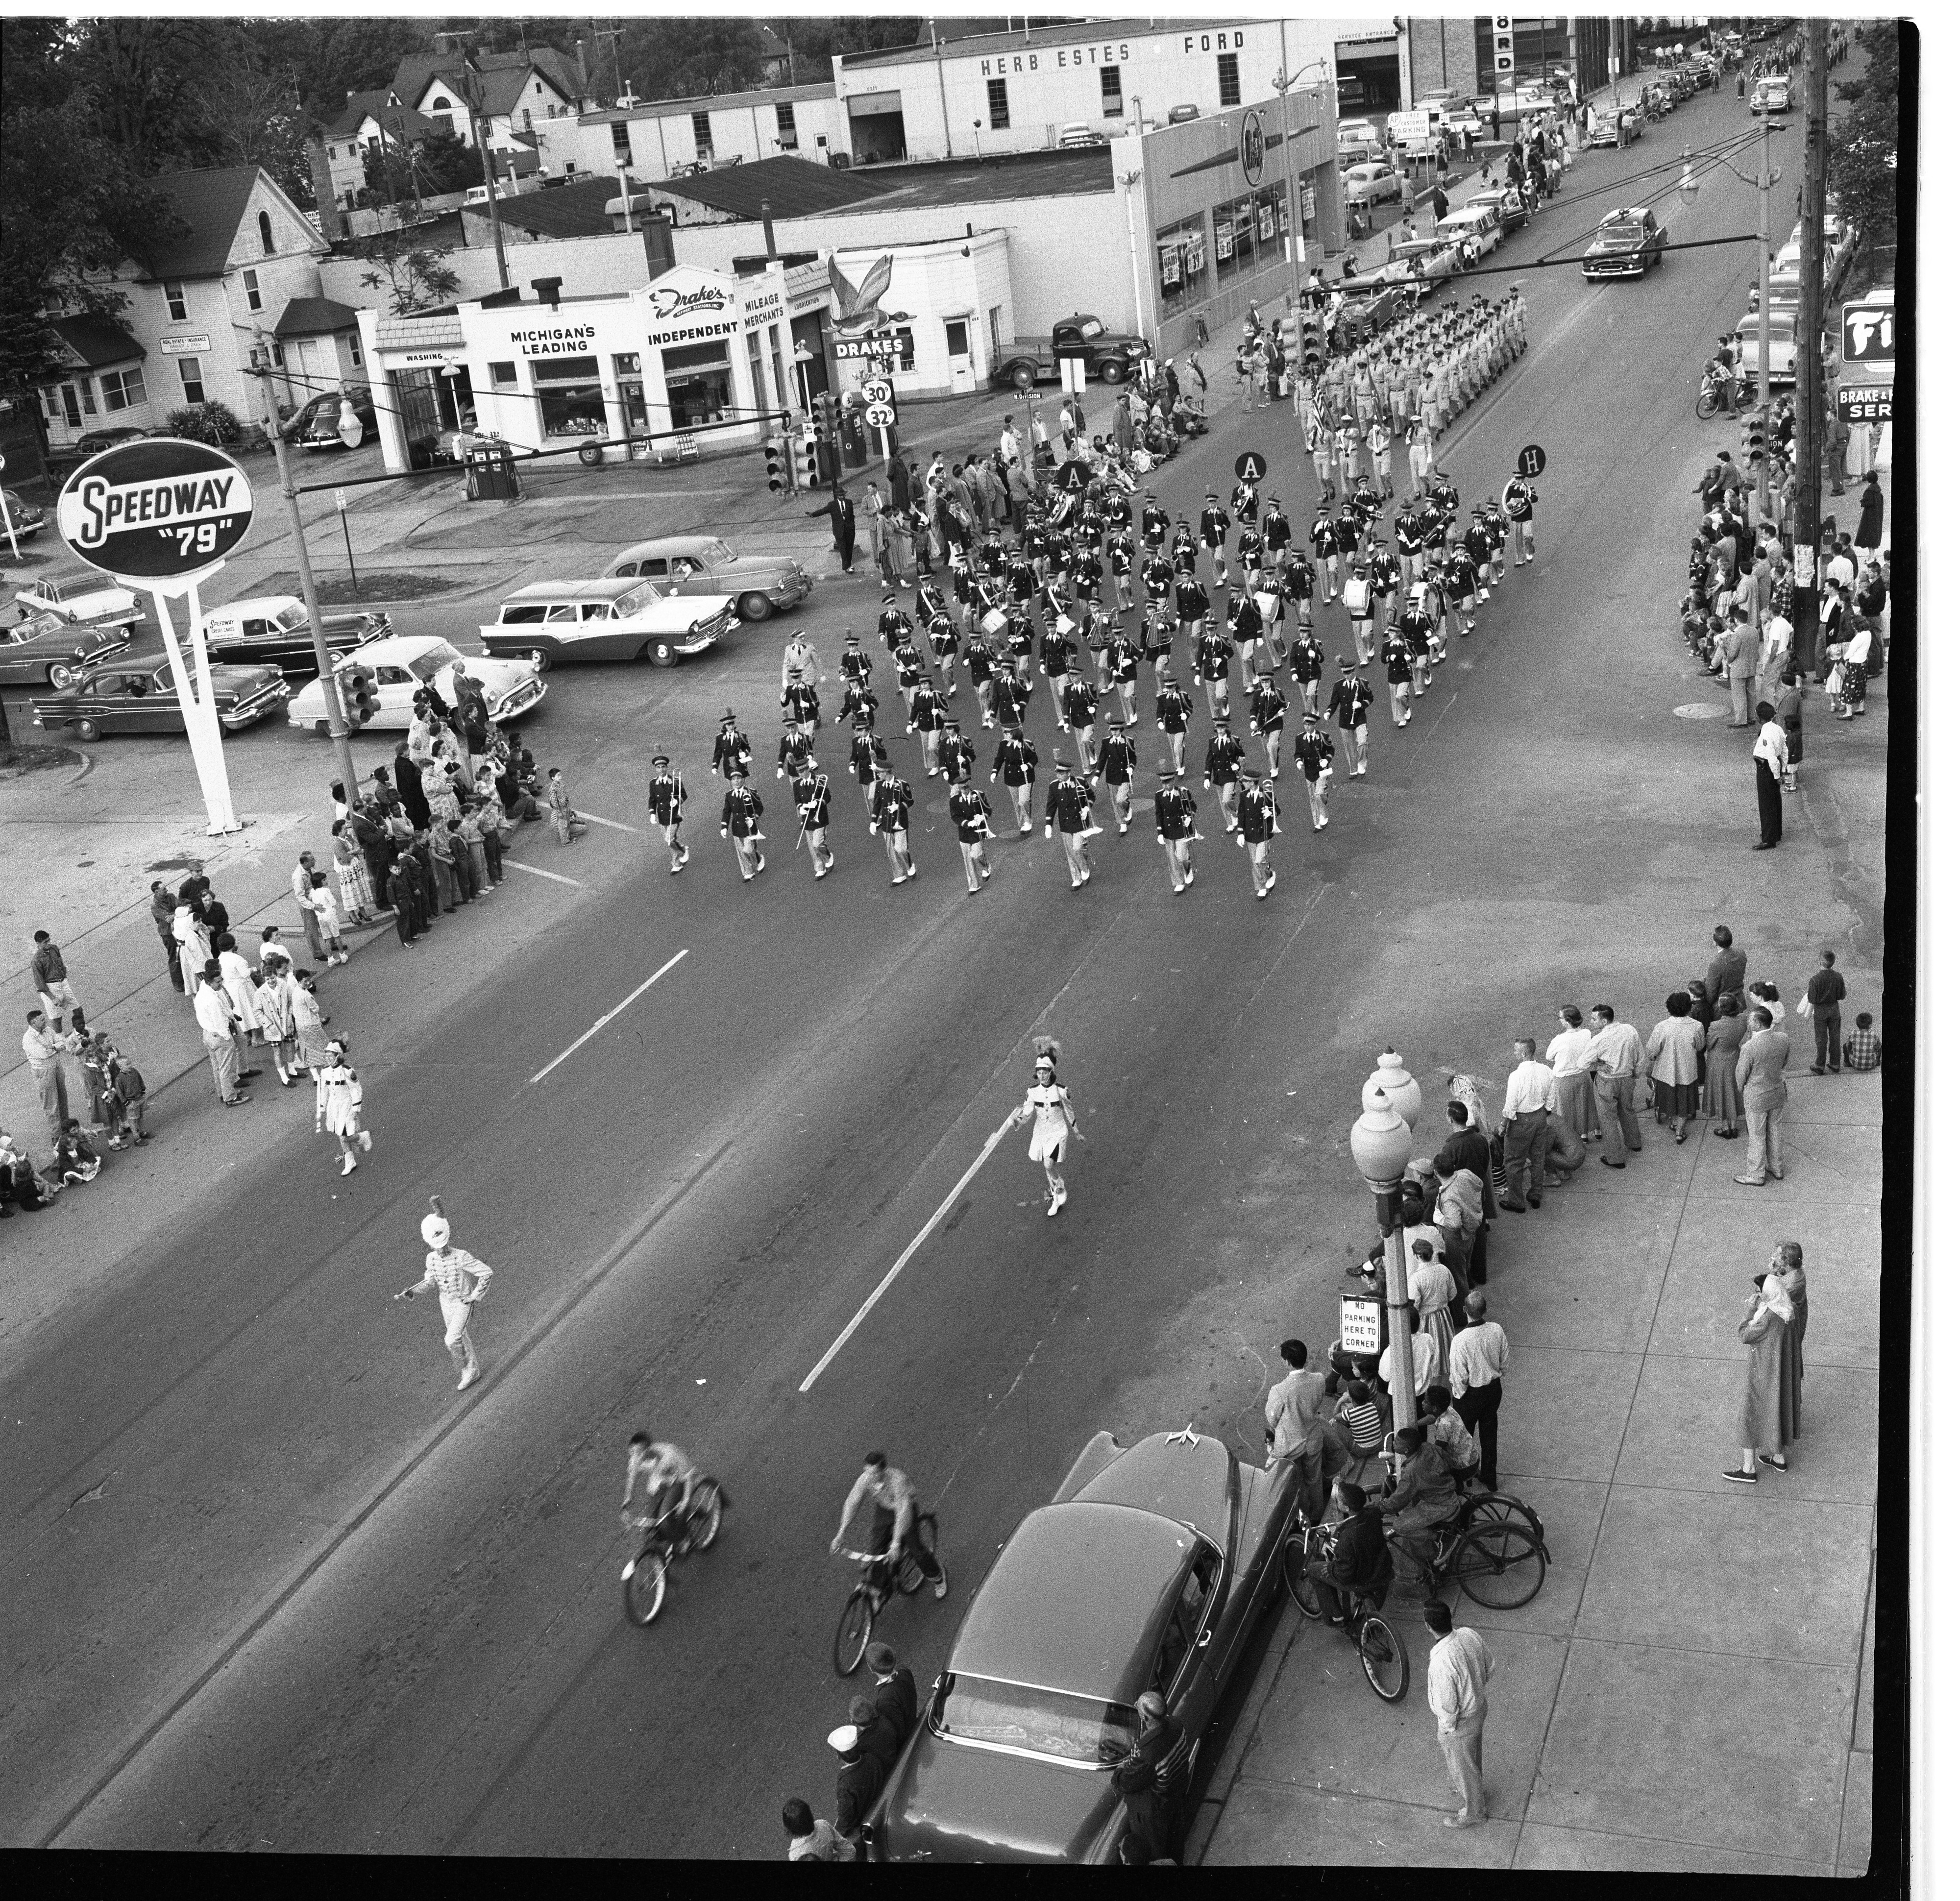 Ann Arbor High School Marching Band In Memorial Day Parade, May 1957 image